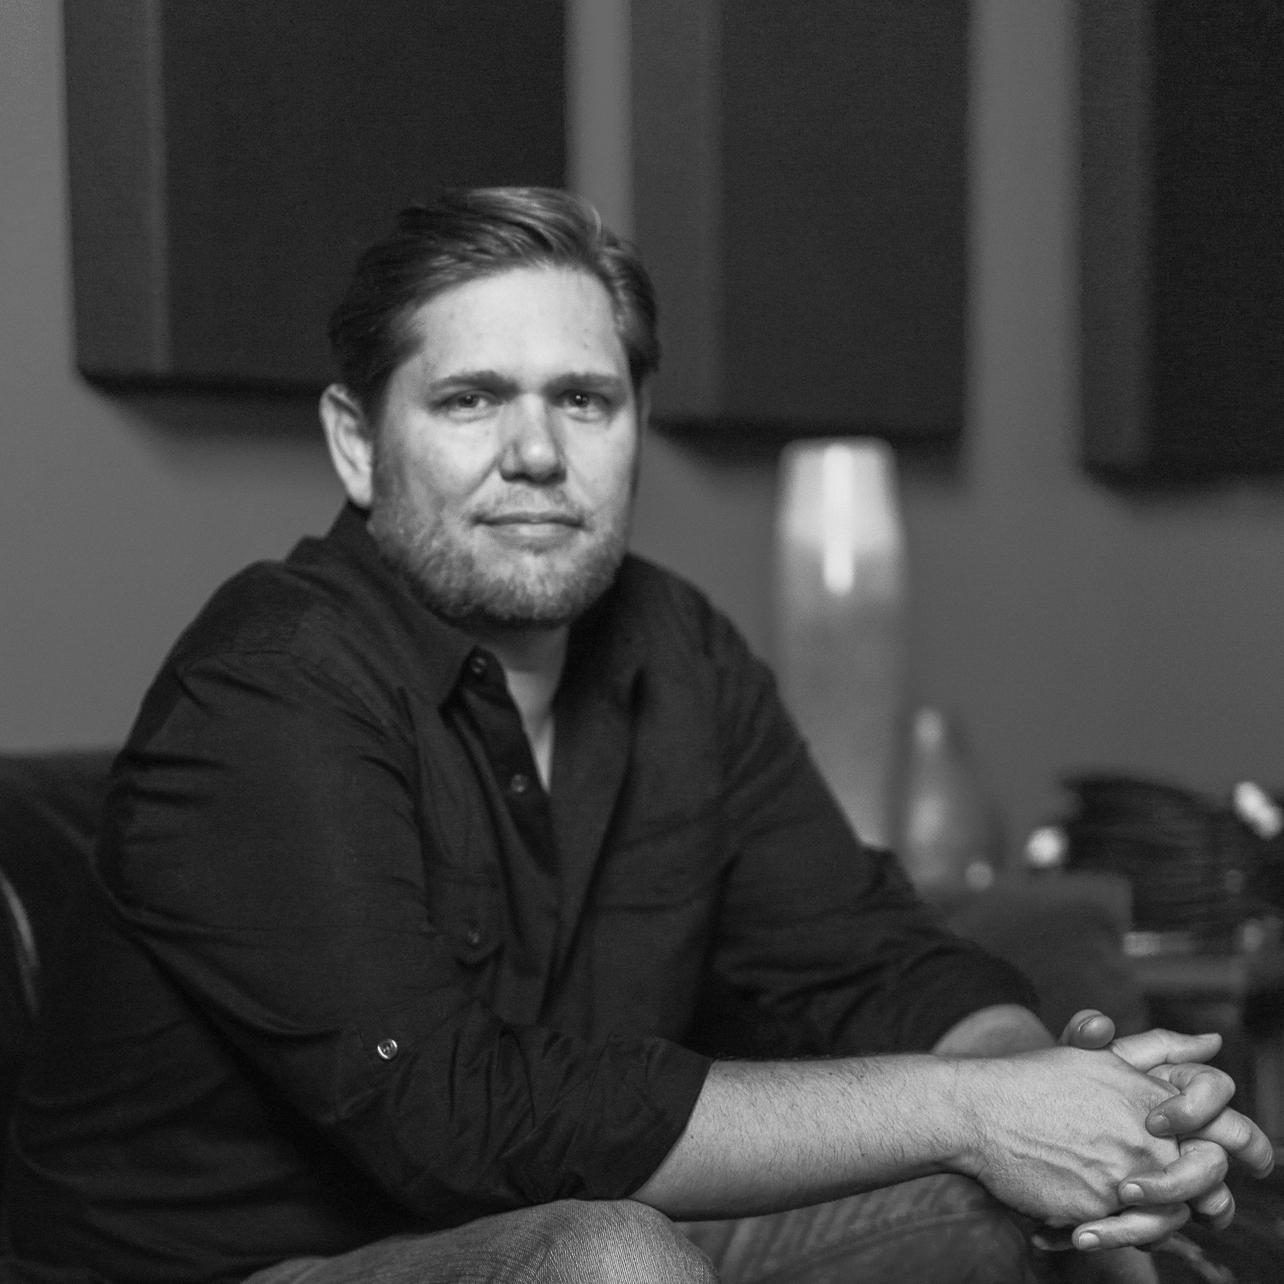 Producer, composer, arranger, musician, engineer with 20+ years of experience in the music business. -